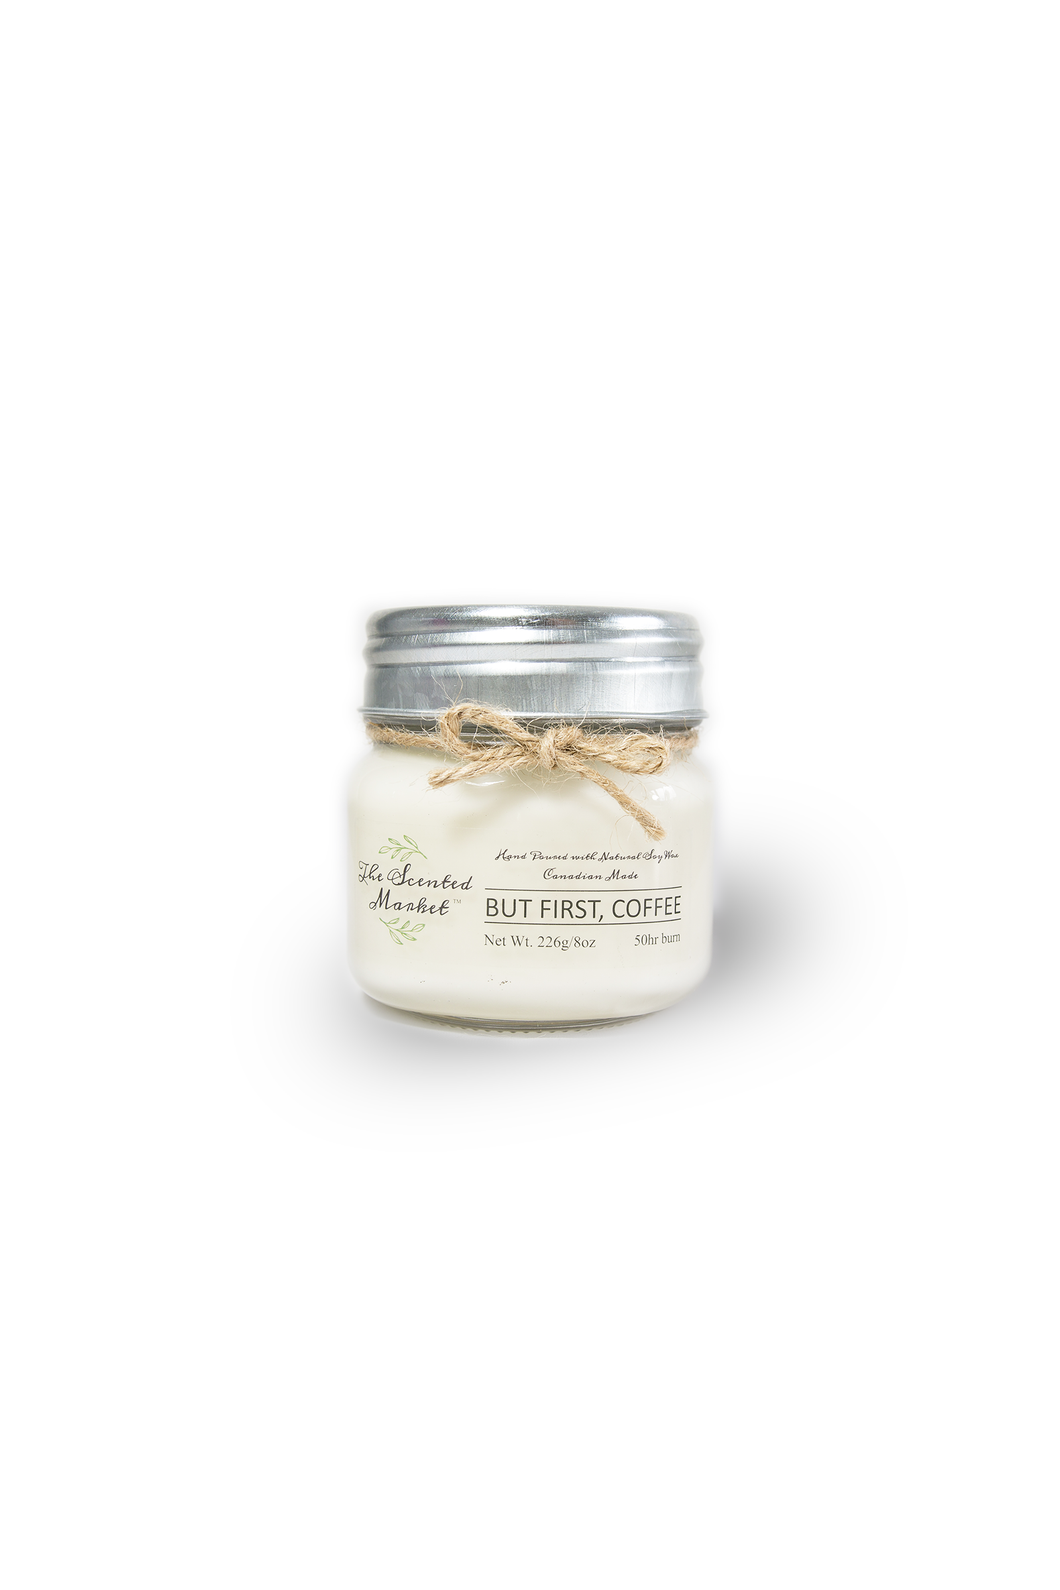 BUT FIRST, COFFEE Soy Wax Candle 8 oz